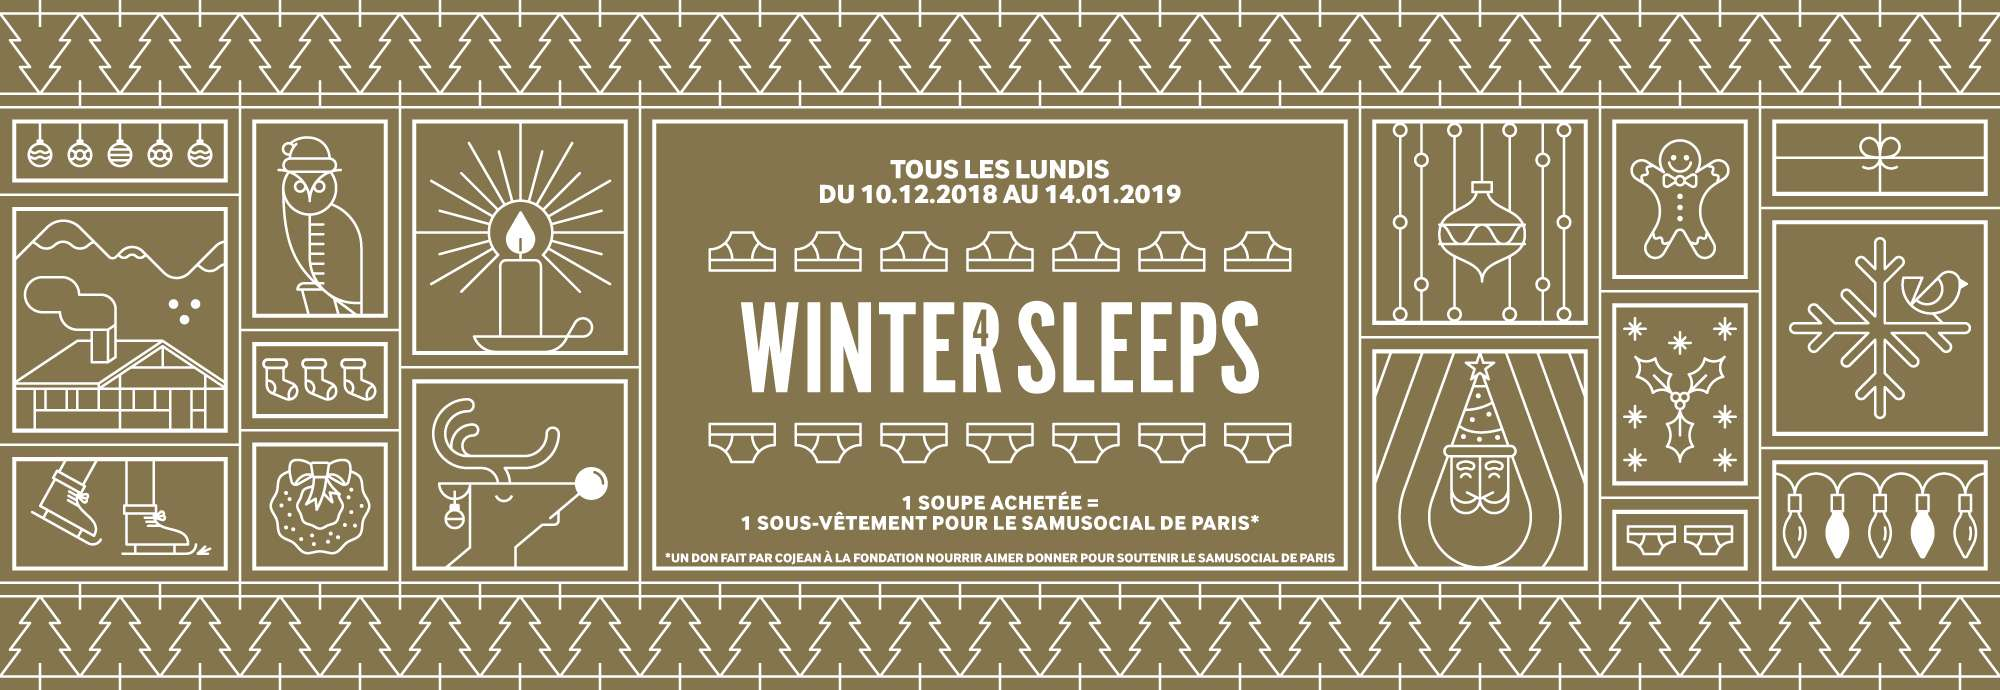 couverture_SITE_winter-sleeps_2018